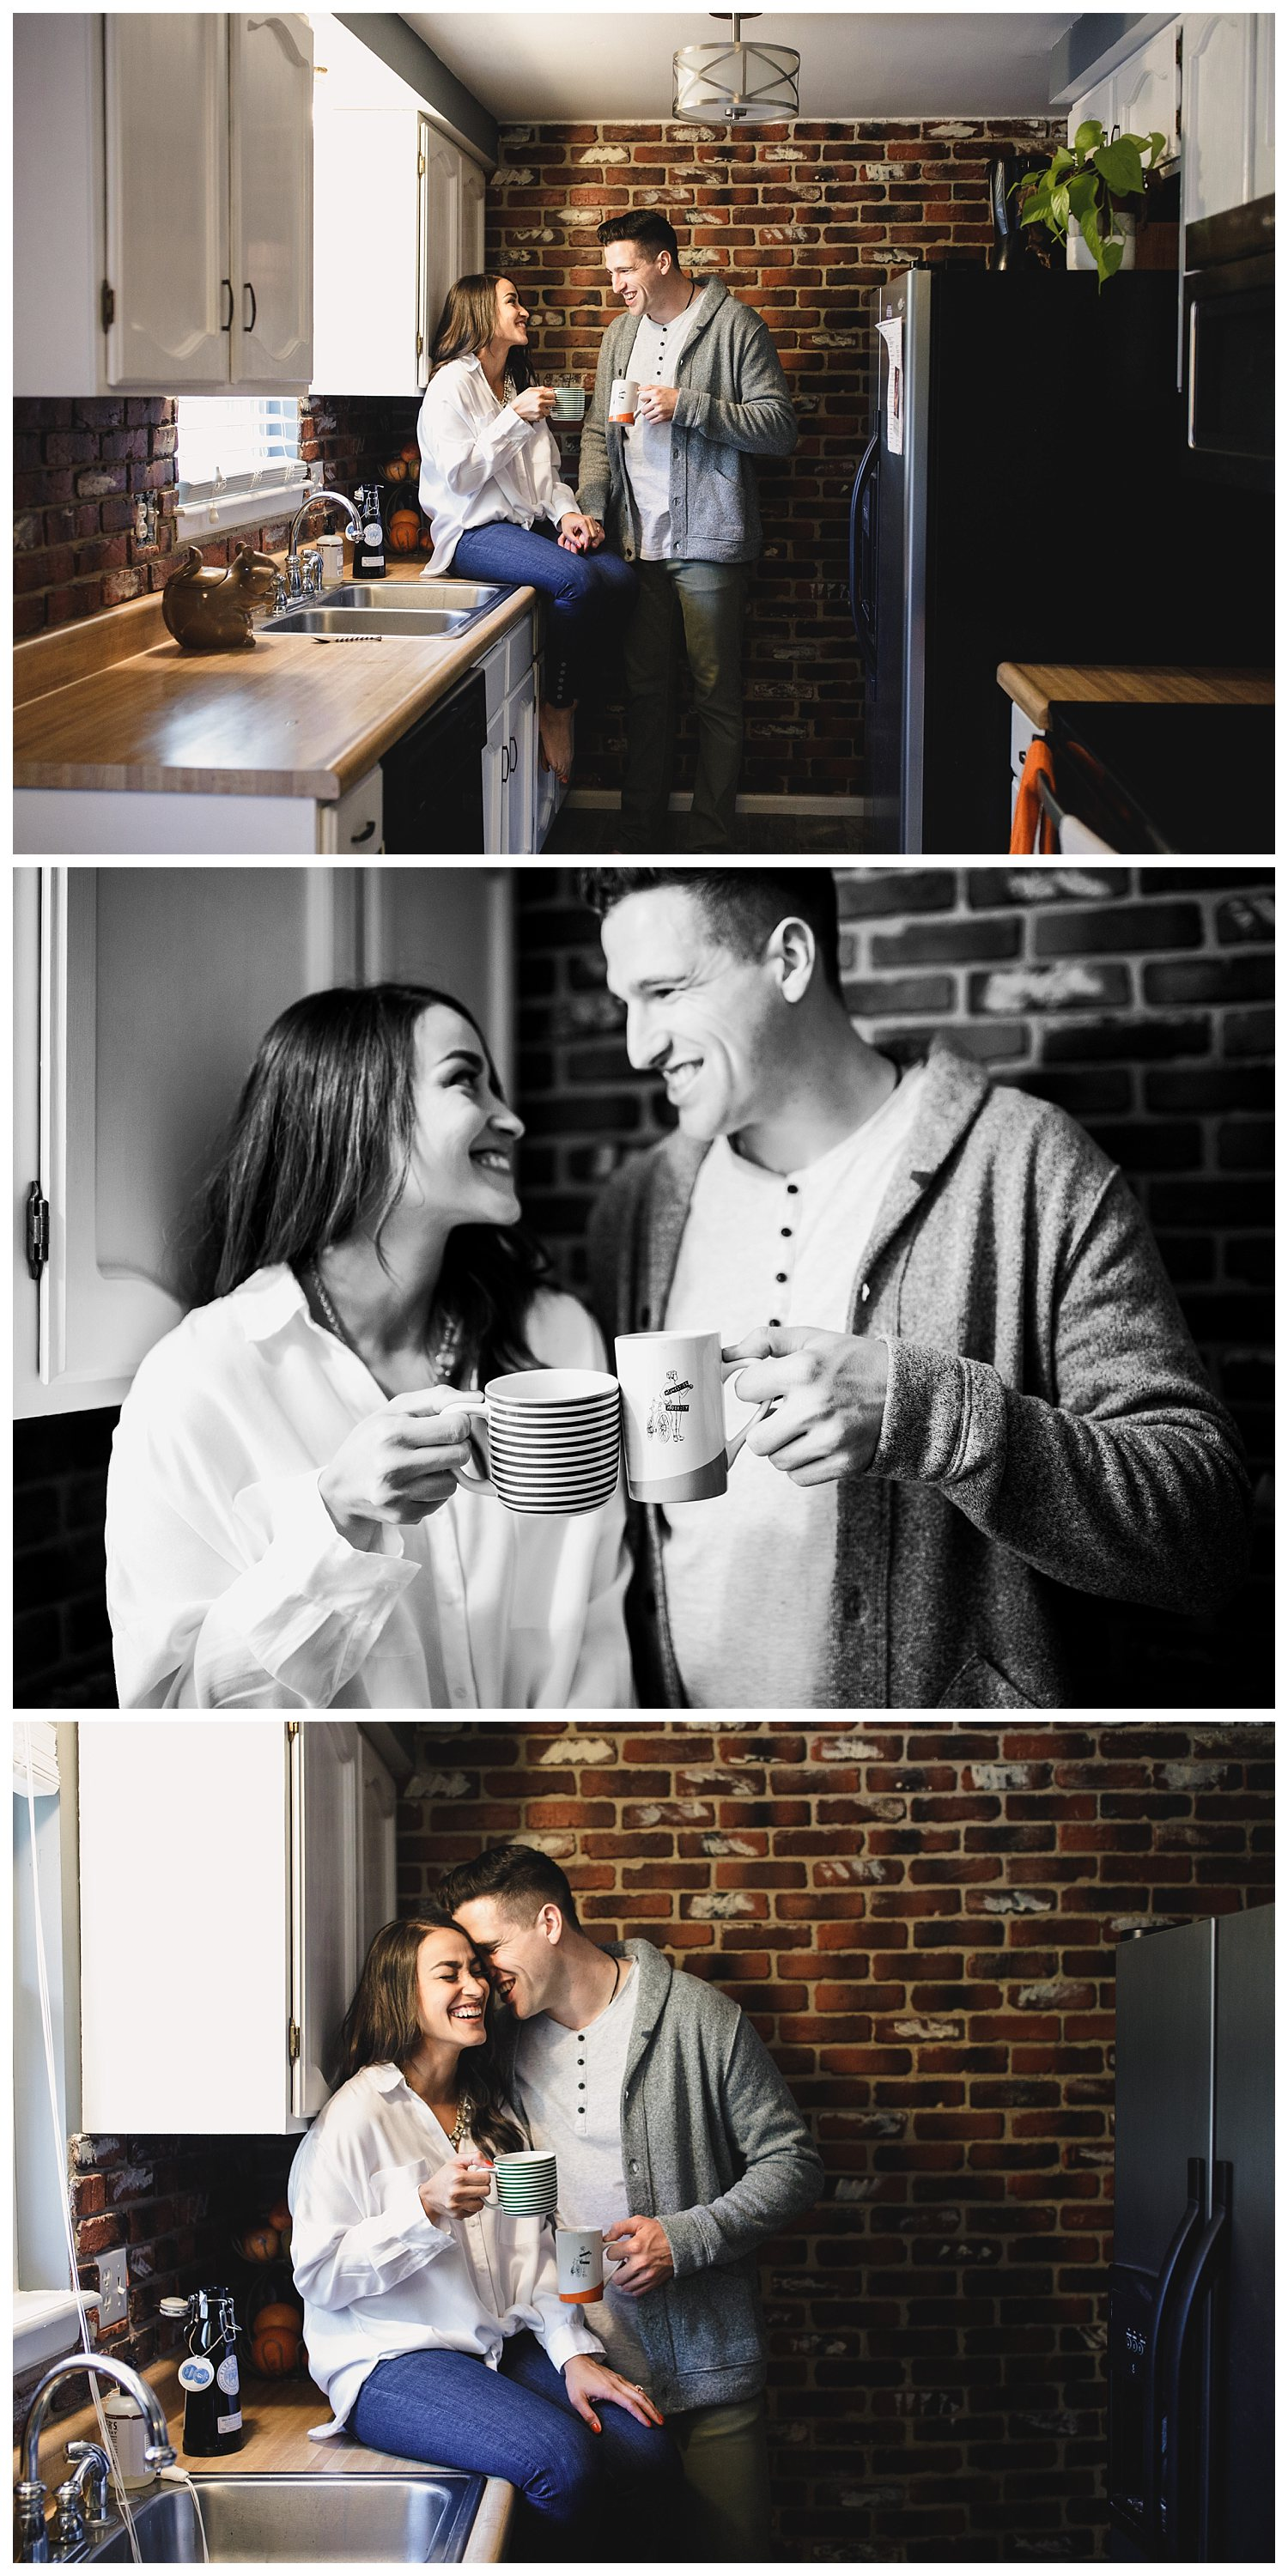 Kansas_City_Wedding_Photographer_Engagement_Kelsey_Diane_Photography_Midwest_Traveling_In_home_engagement_Session_Cassie_Austin_Parkville_Missouri_0871.jpg